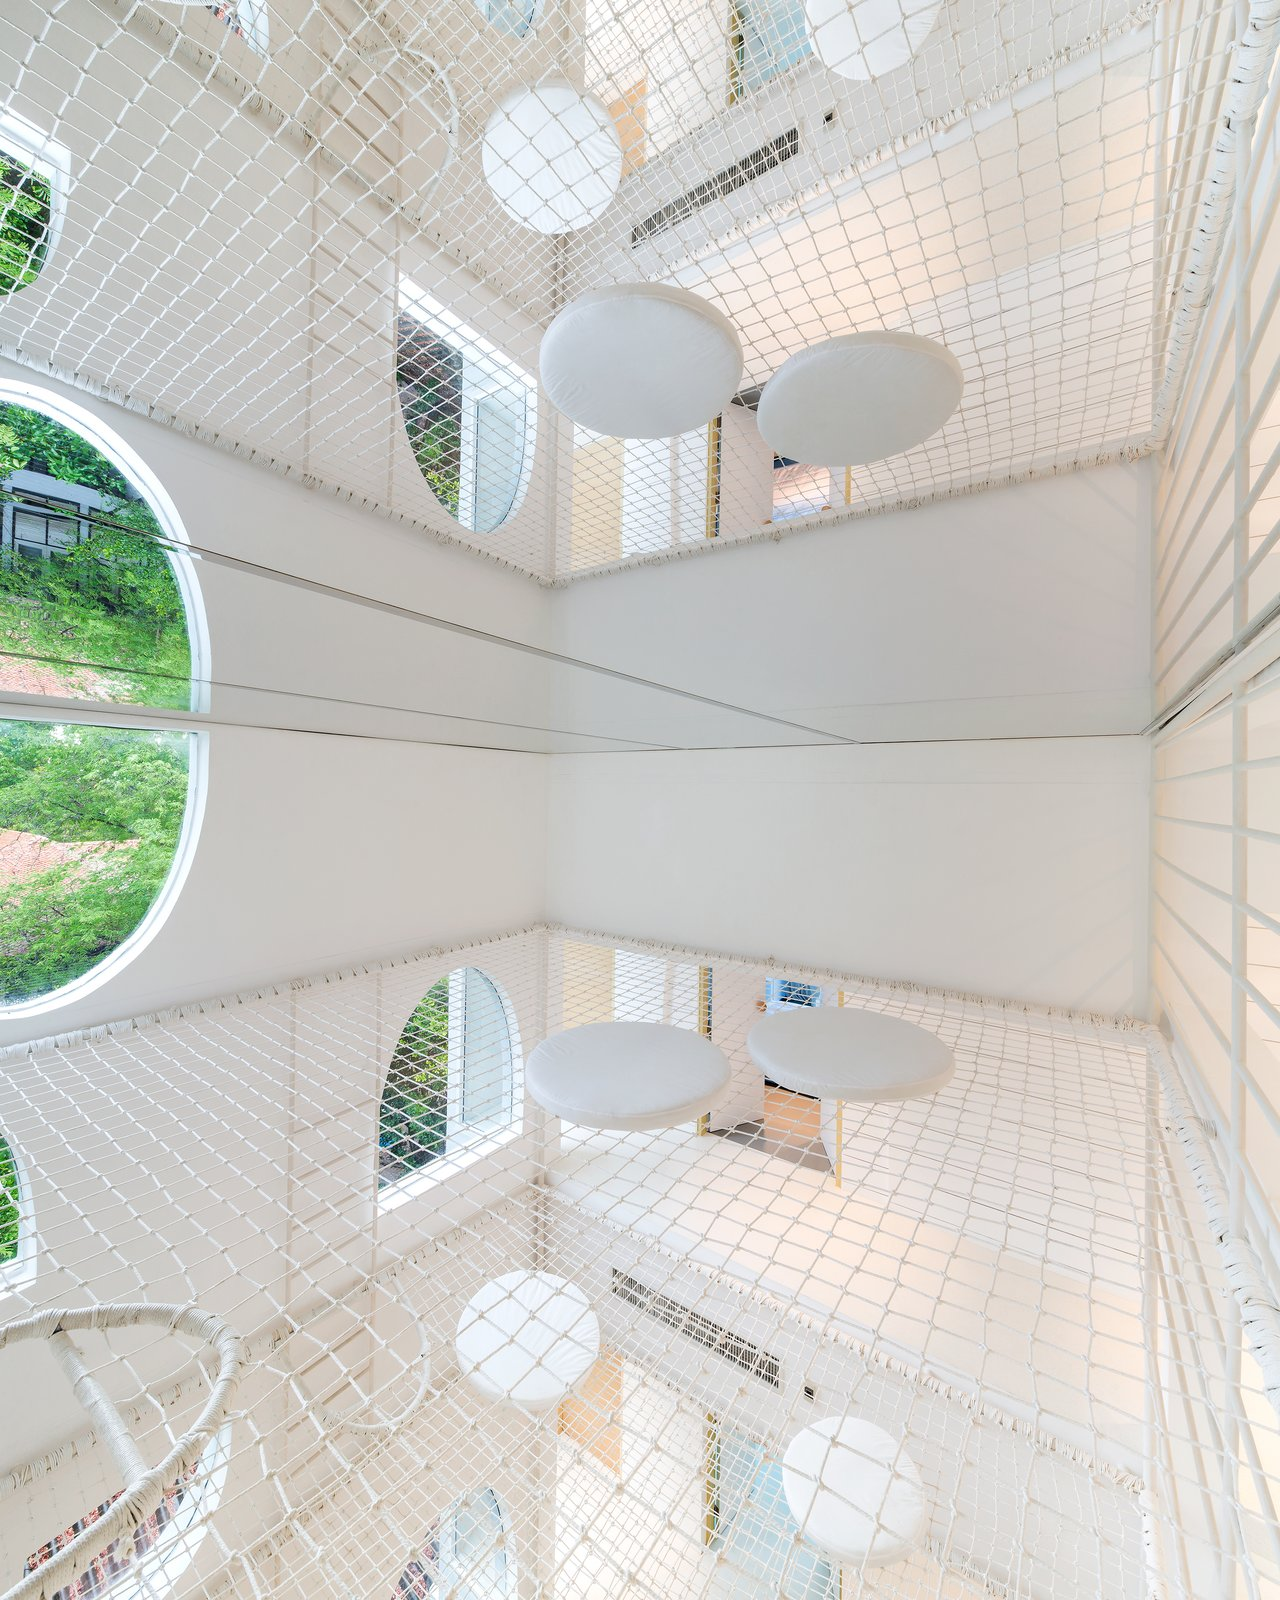 Photo 11 of 11 in Inspired by Tom and Jerry, This Net-Filled Vacation Home Is a Kid's Paradise